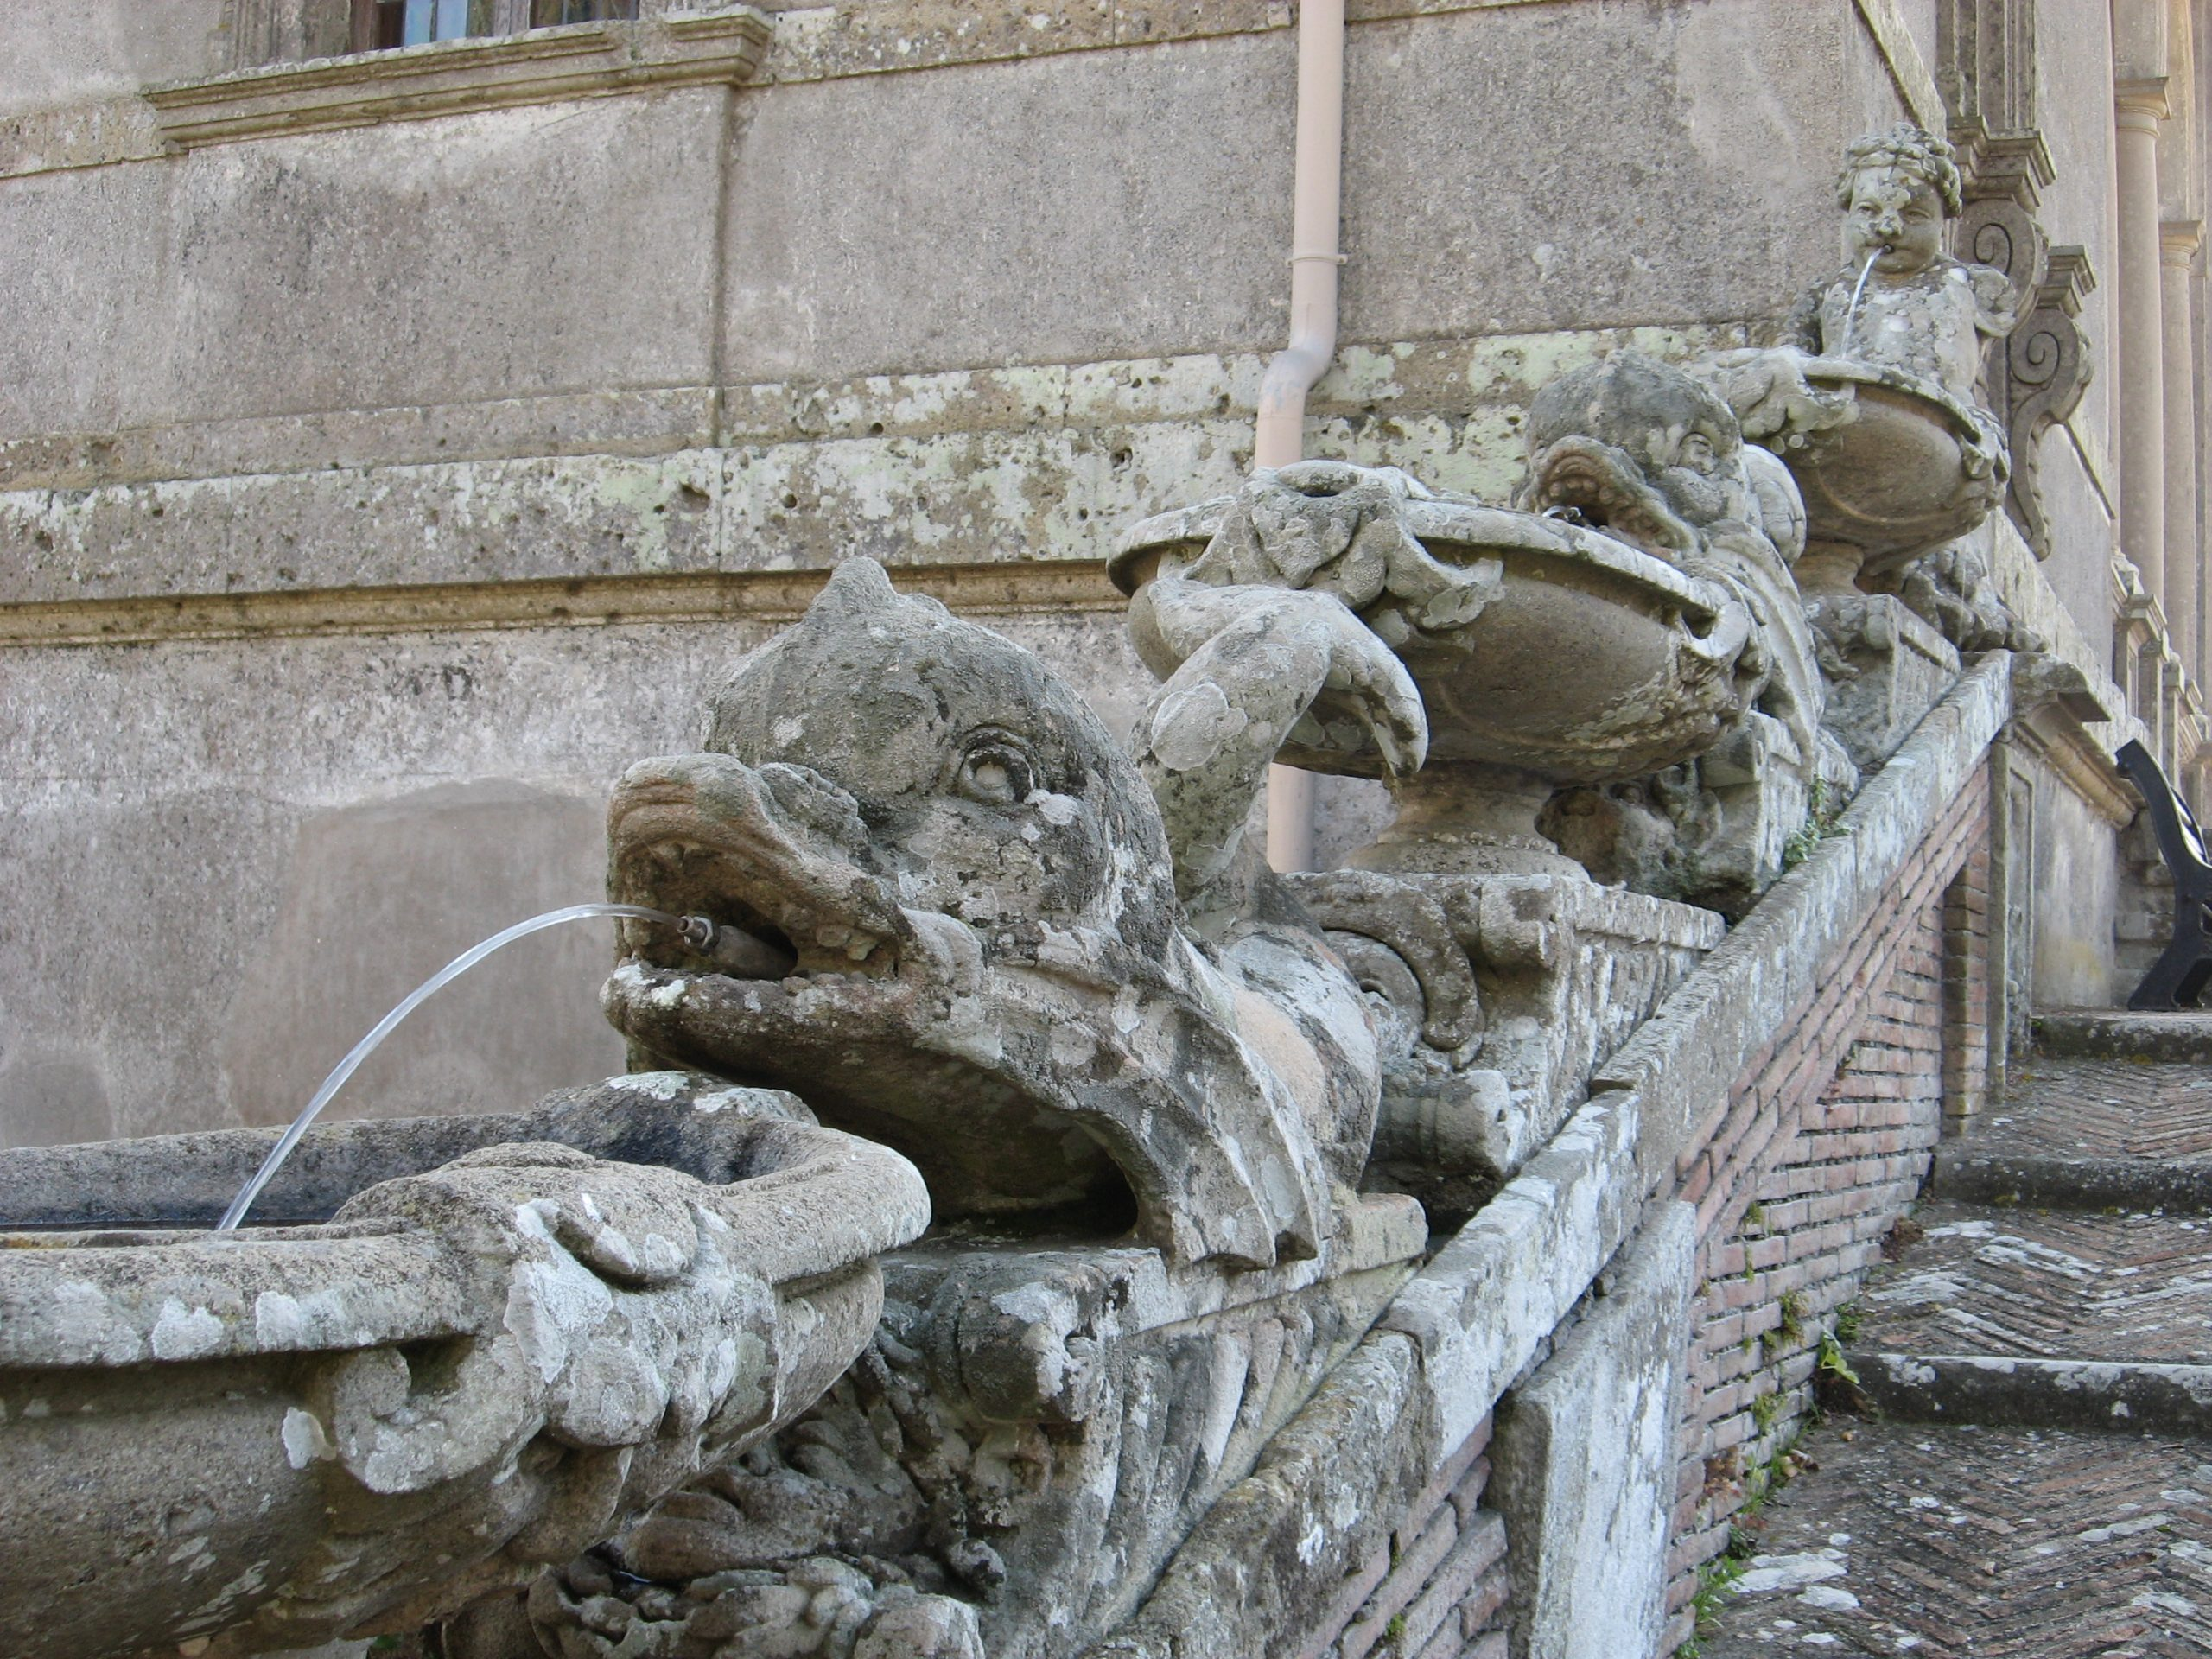 detail of a fountain at palazzo farnese: water cascading from the mouths of stone dolphins lining a flight of steps